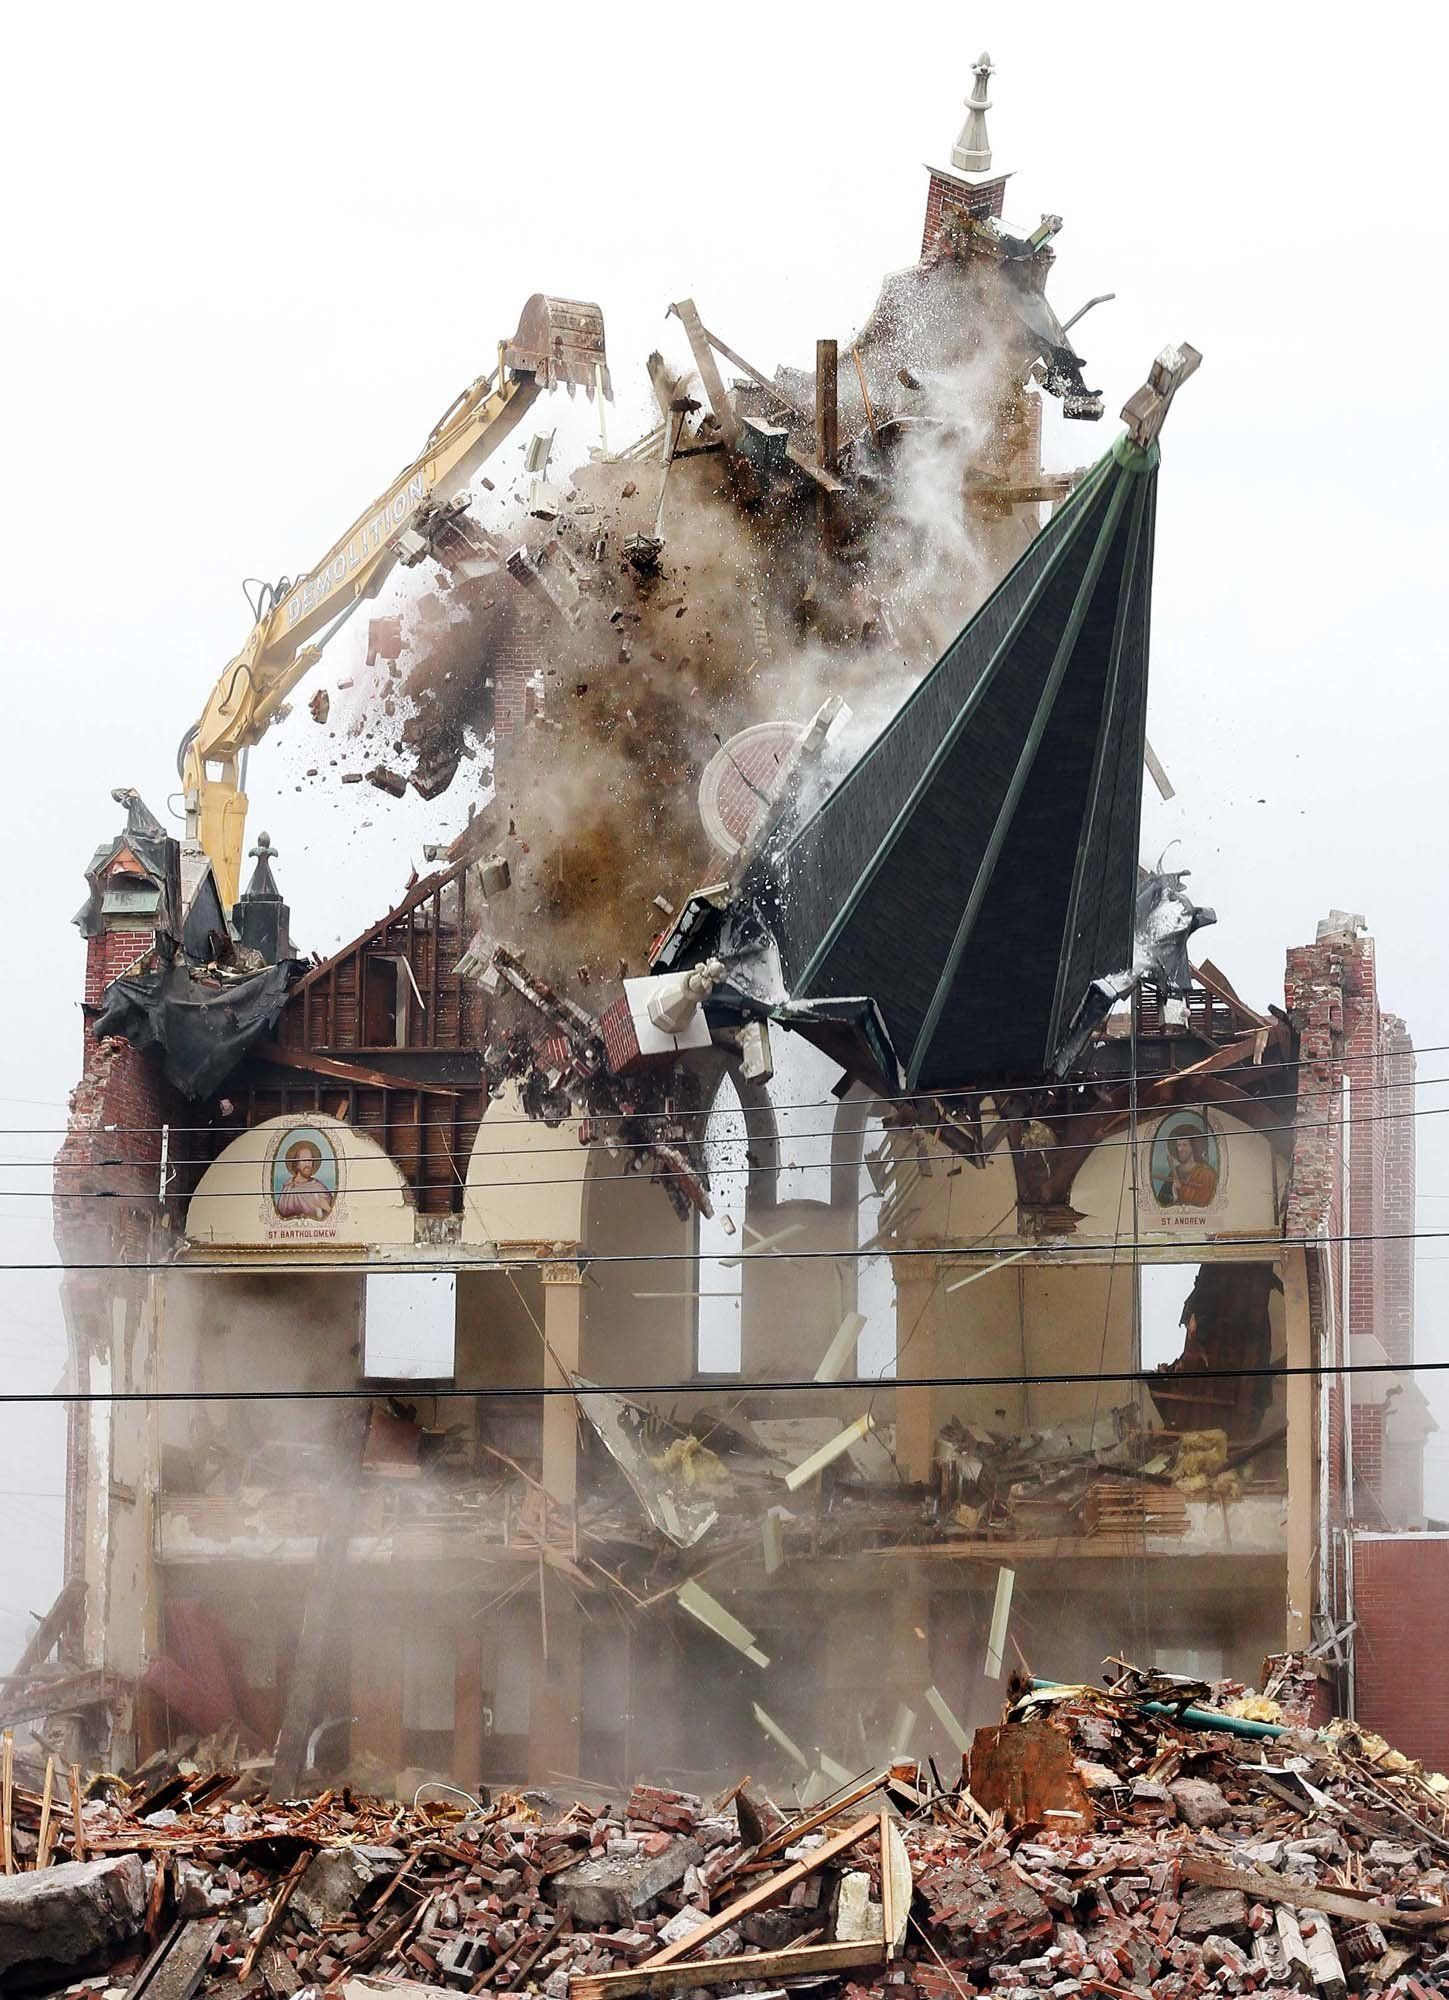 In this Monday, Feb. 11, 2019 photo, the steeple of Saint Joseph's Church in Nanticoke, Pa., is knocked down as Brdaric Excavating began the demolition of the property. The church and an adjoining rectory closed in May 2010 as part of the Catholic church consolidation.